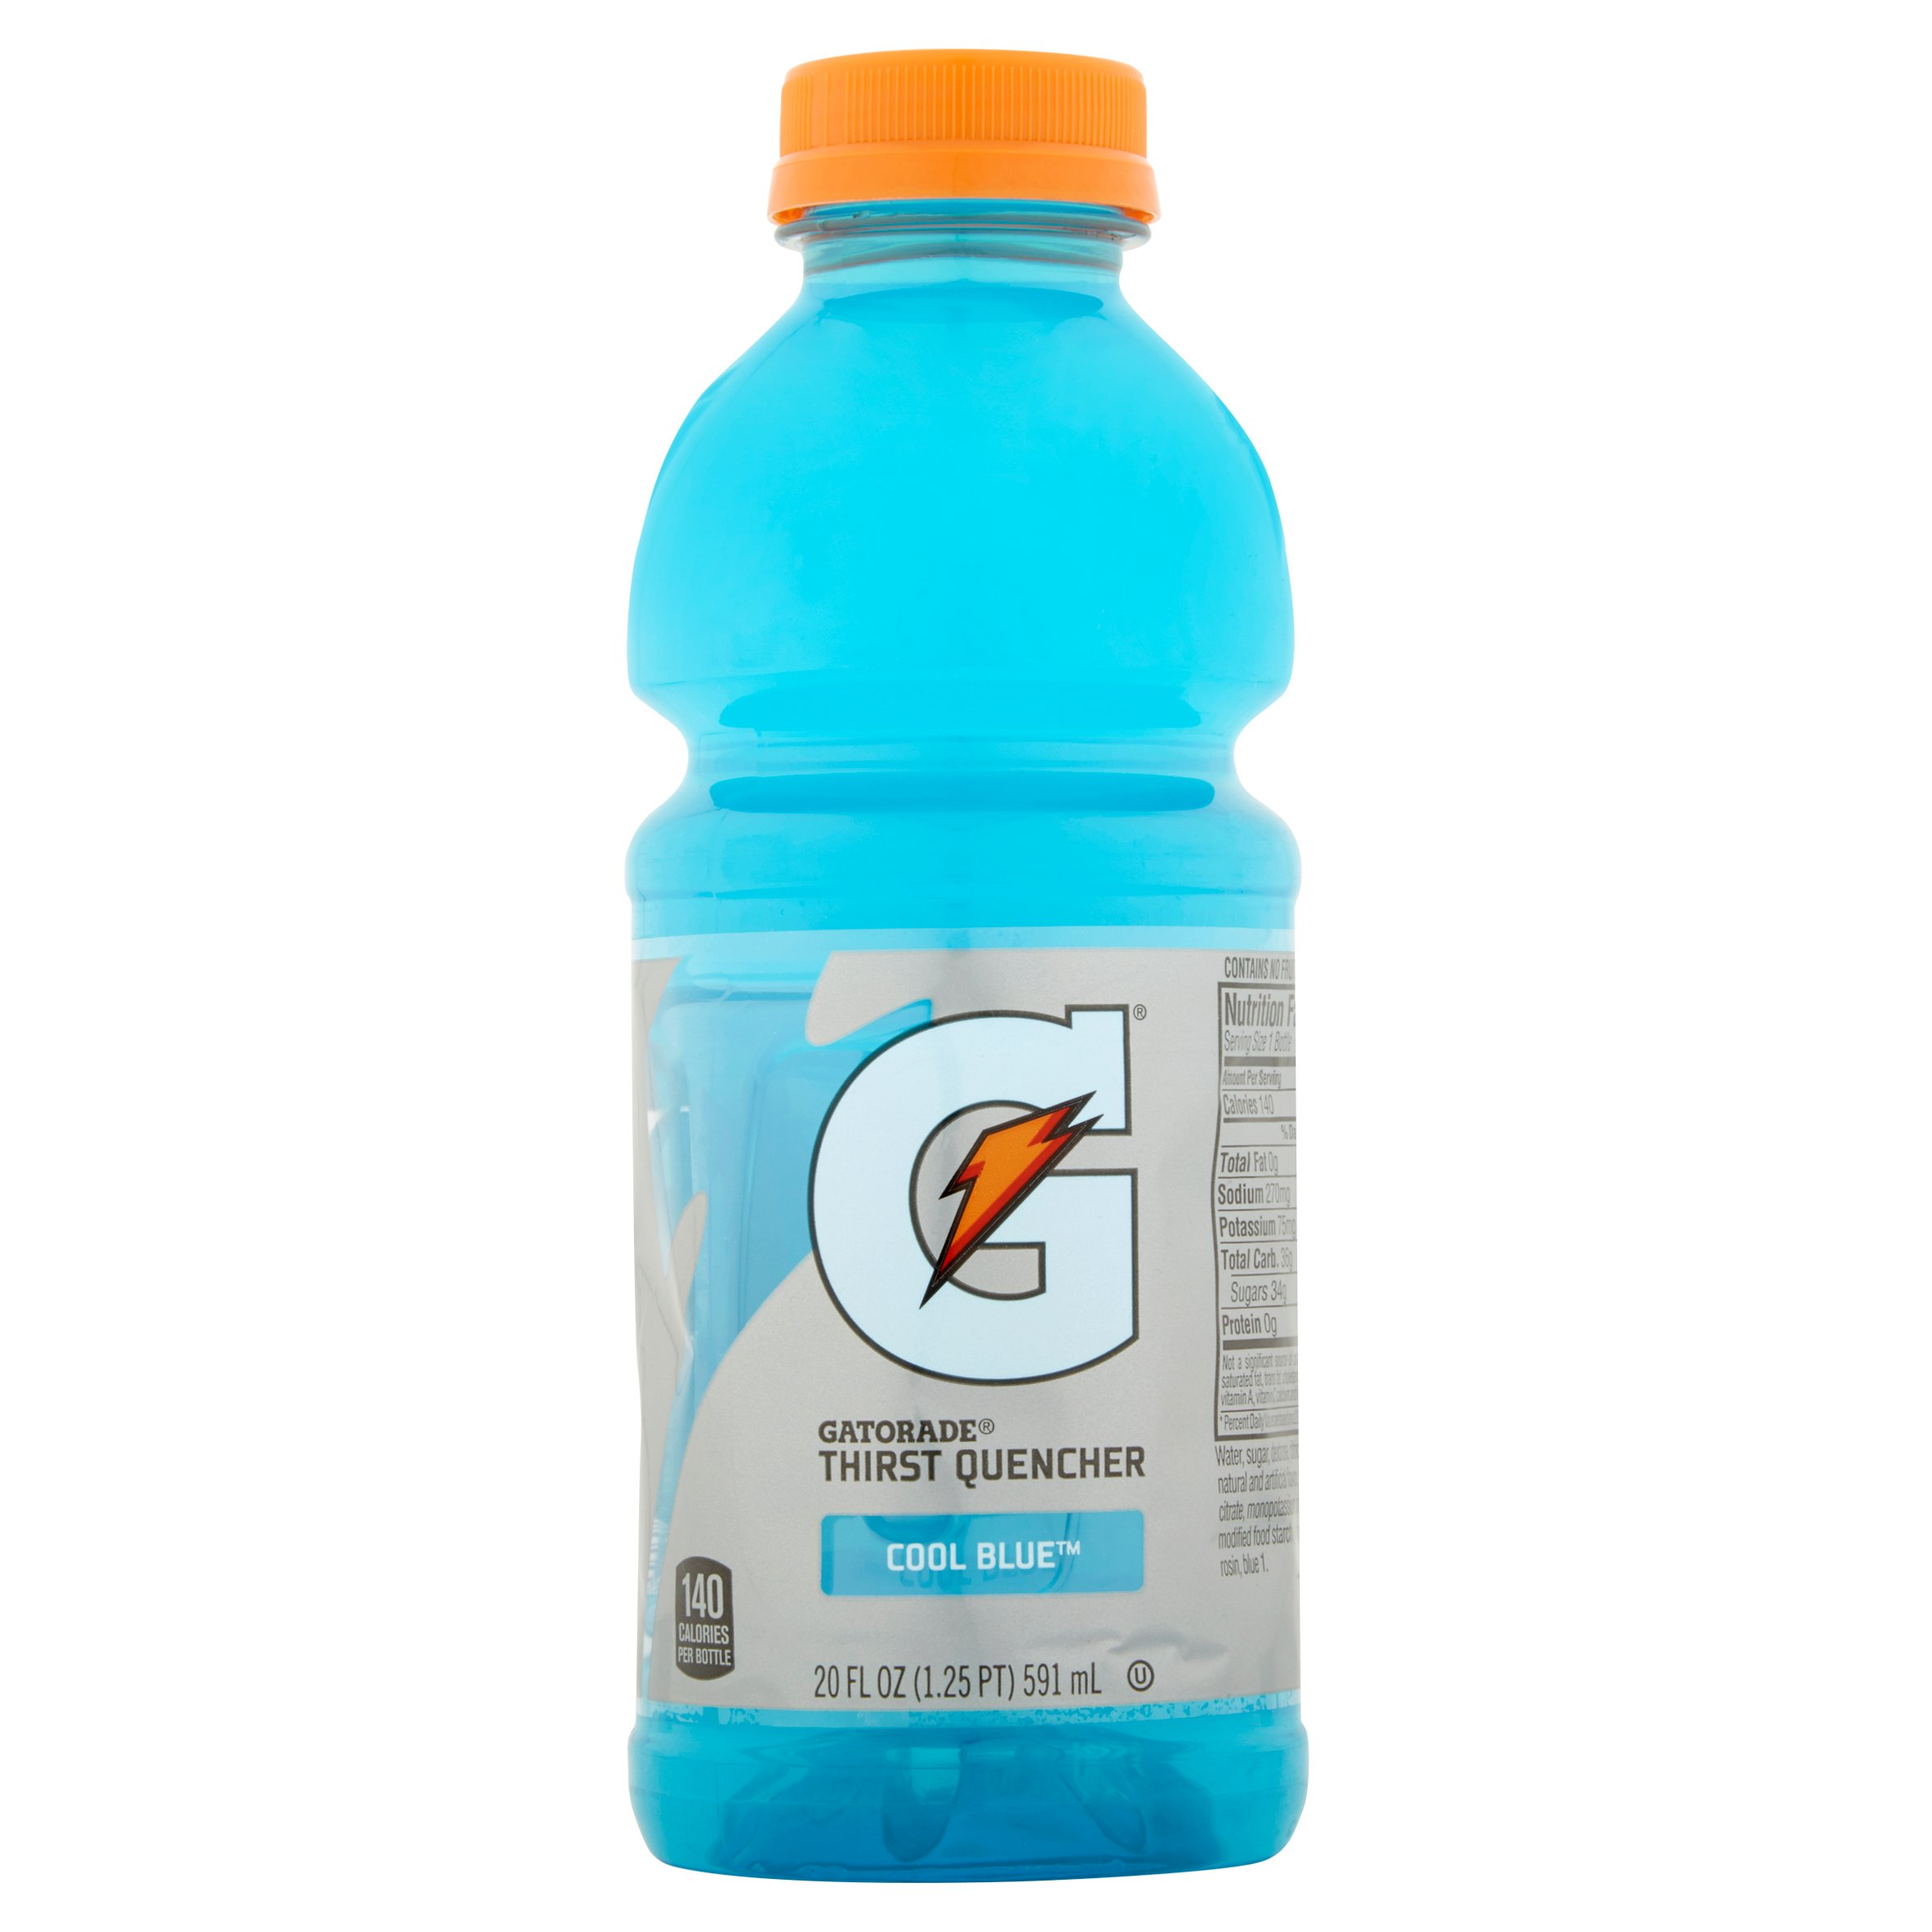 Gatorade Thirst Quencher Sports Drink, Cool Blue, 20 Fl Oz, 8 Count